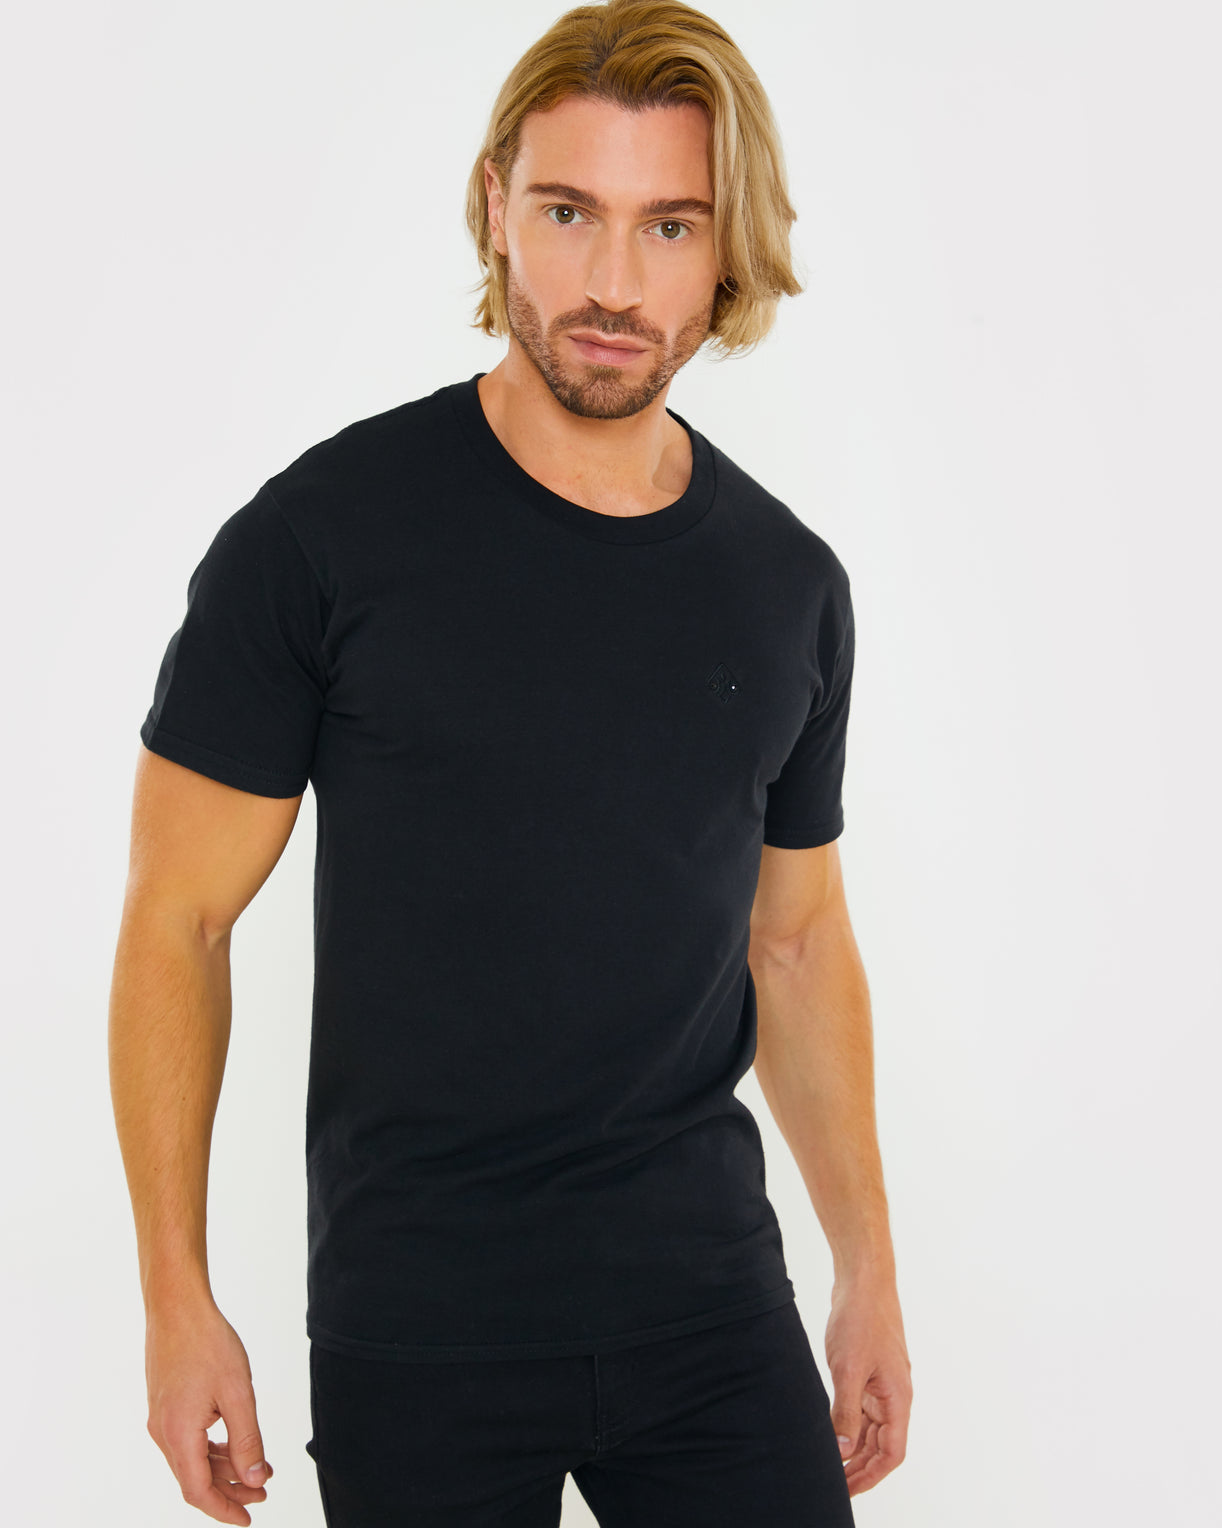 Black T-Shirt for Men/Women Uk